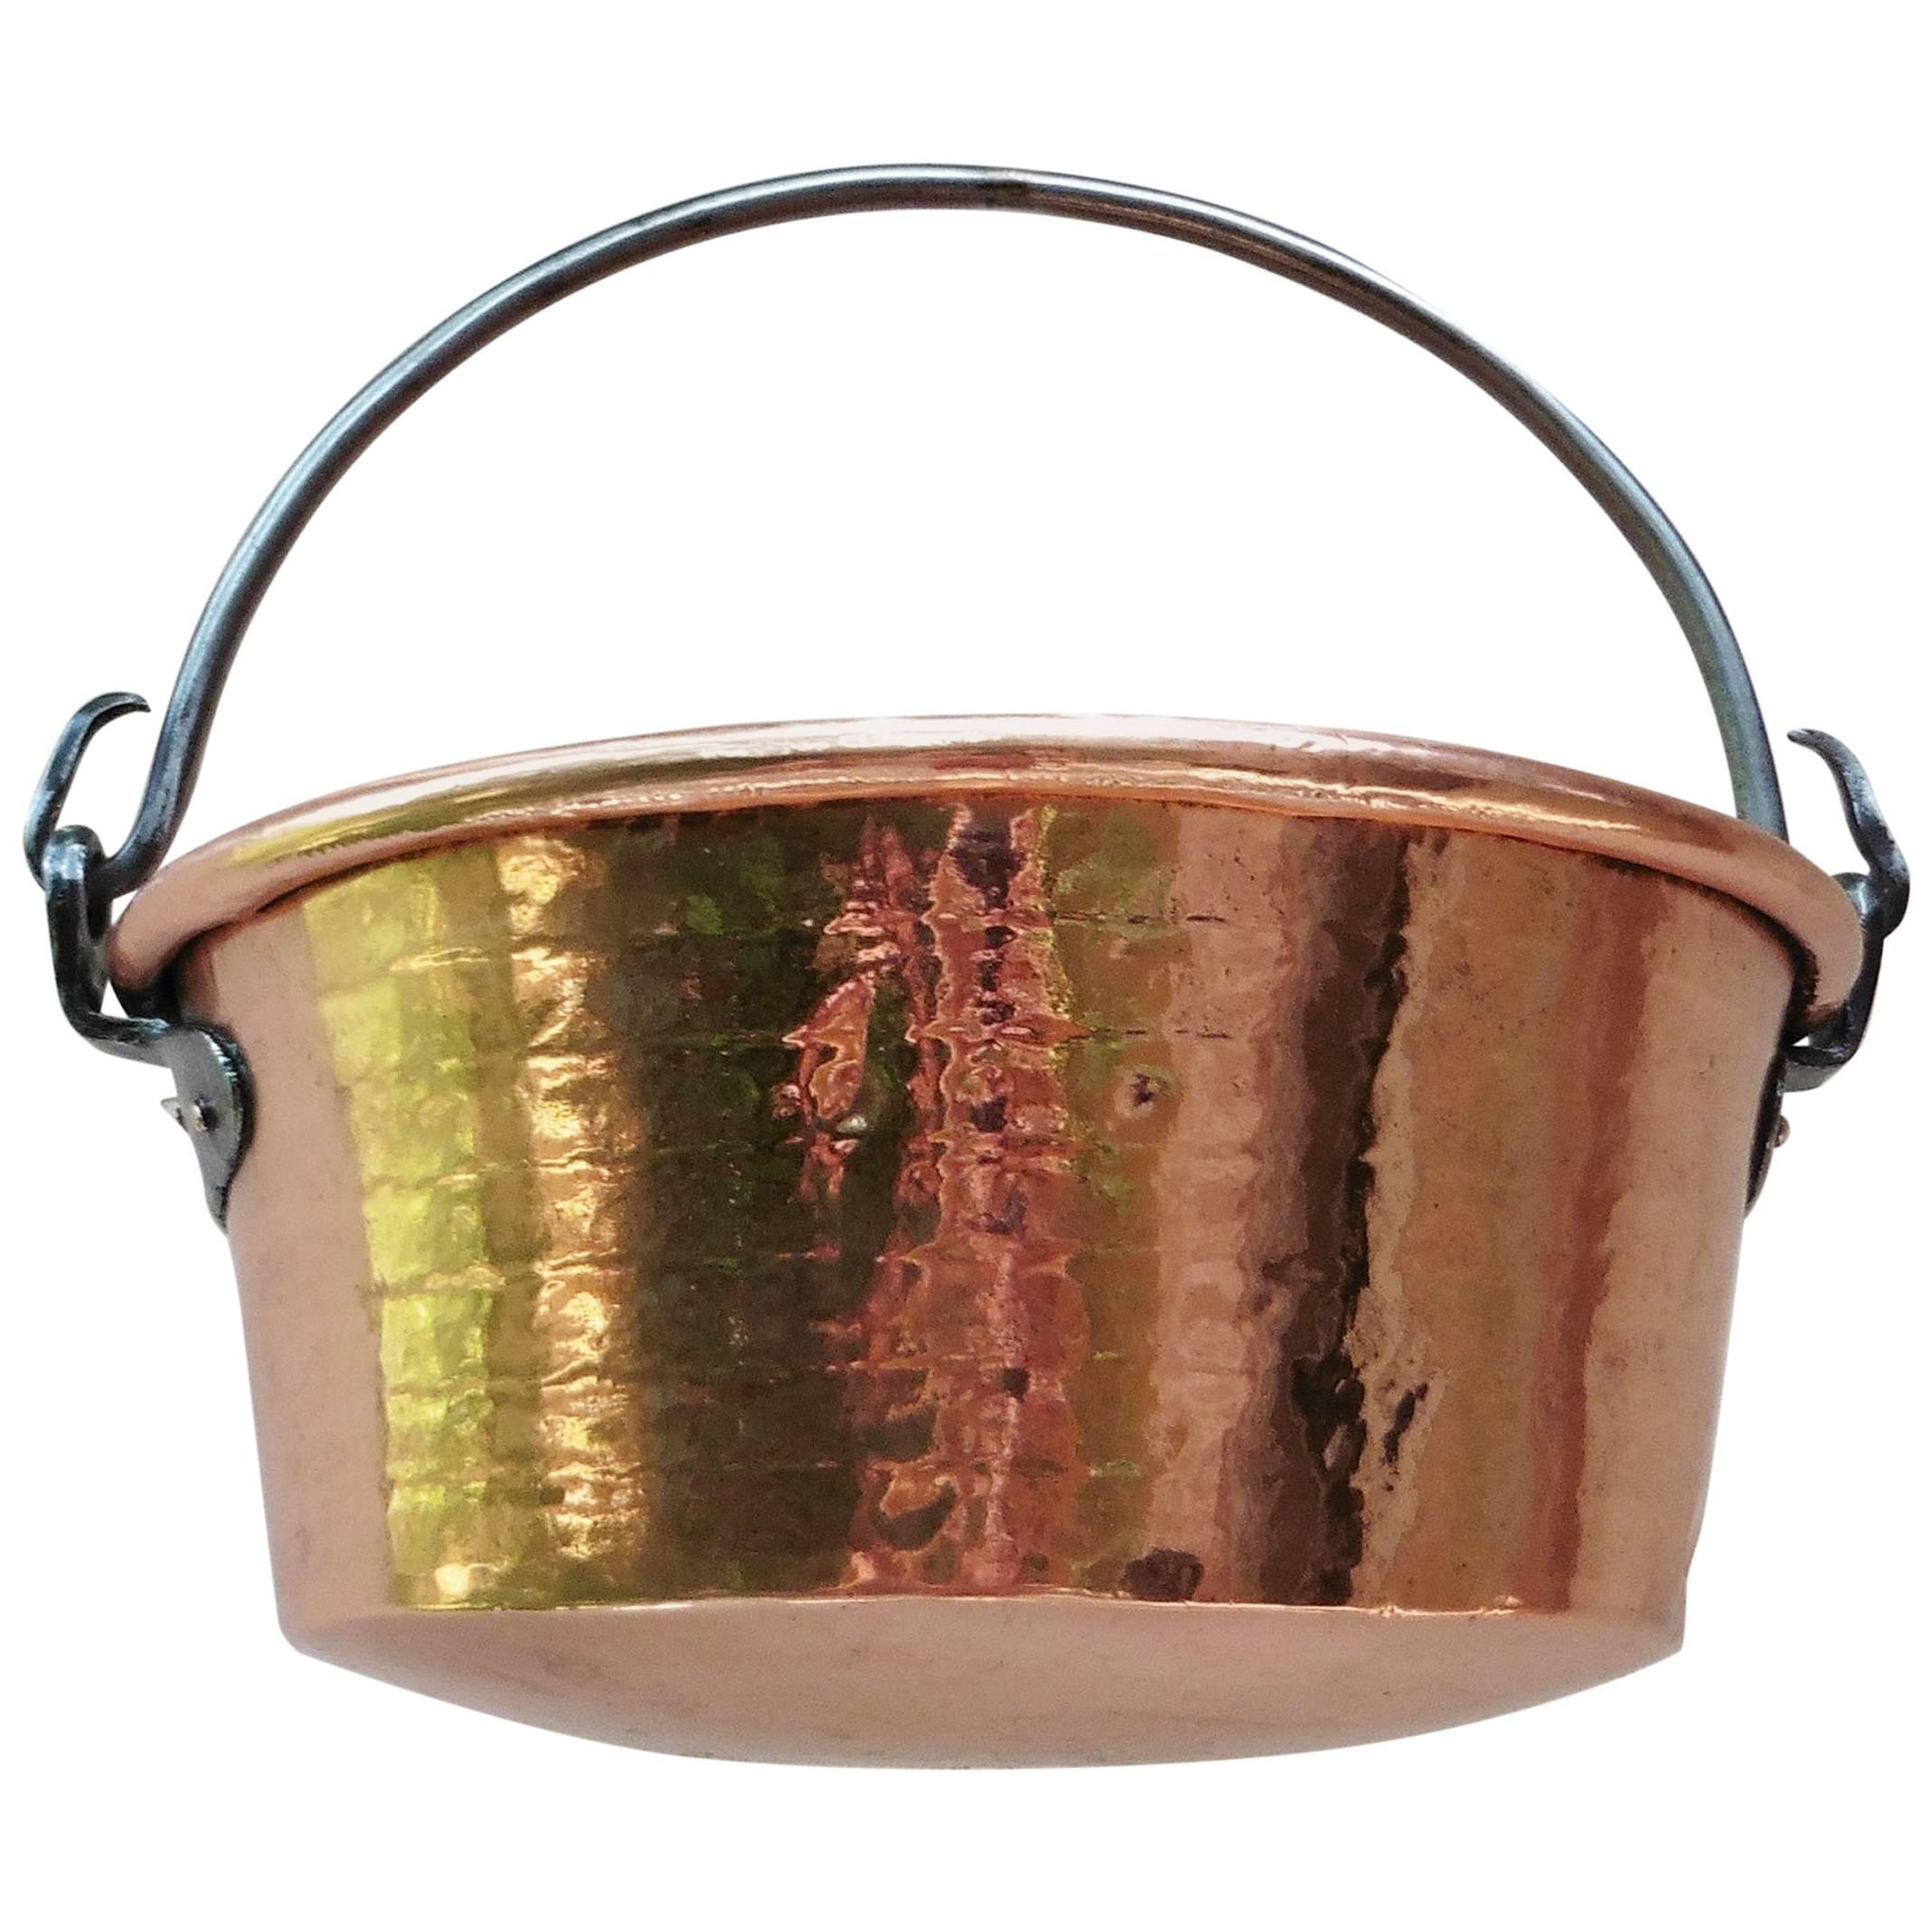 Early 19th Century French Copper Cauldron